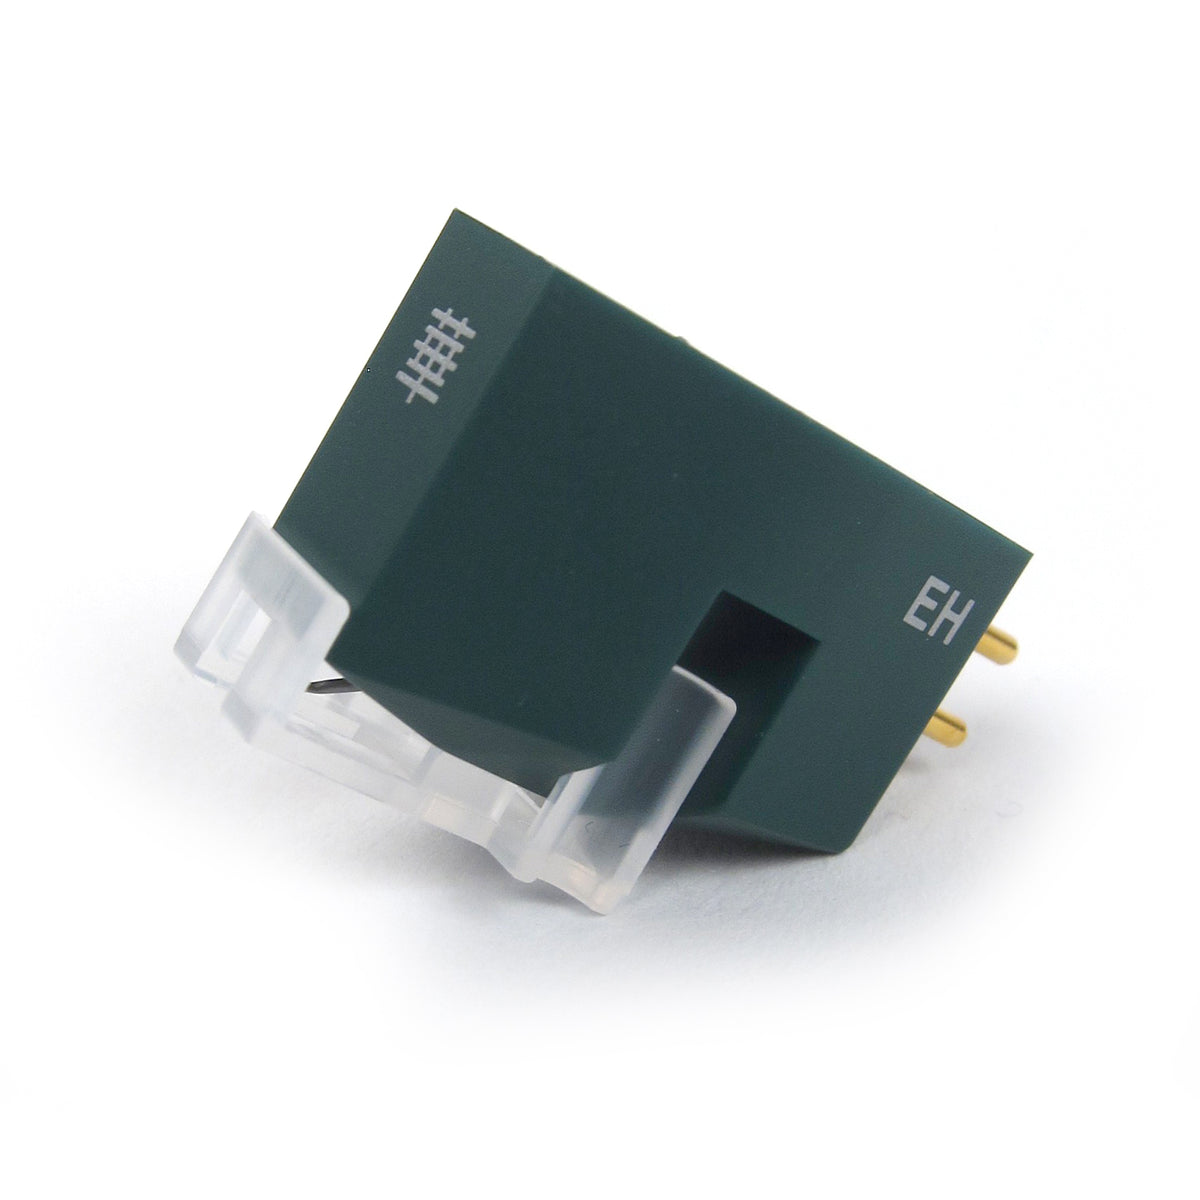 Hana: EH Moving Coil Cartridge - Elliptical Stylus / High Output